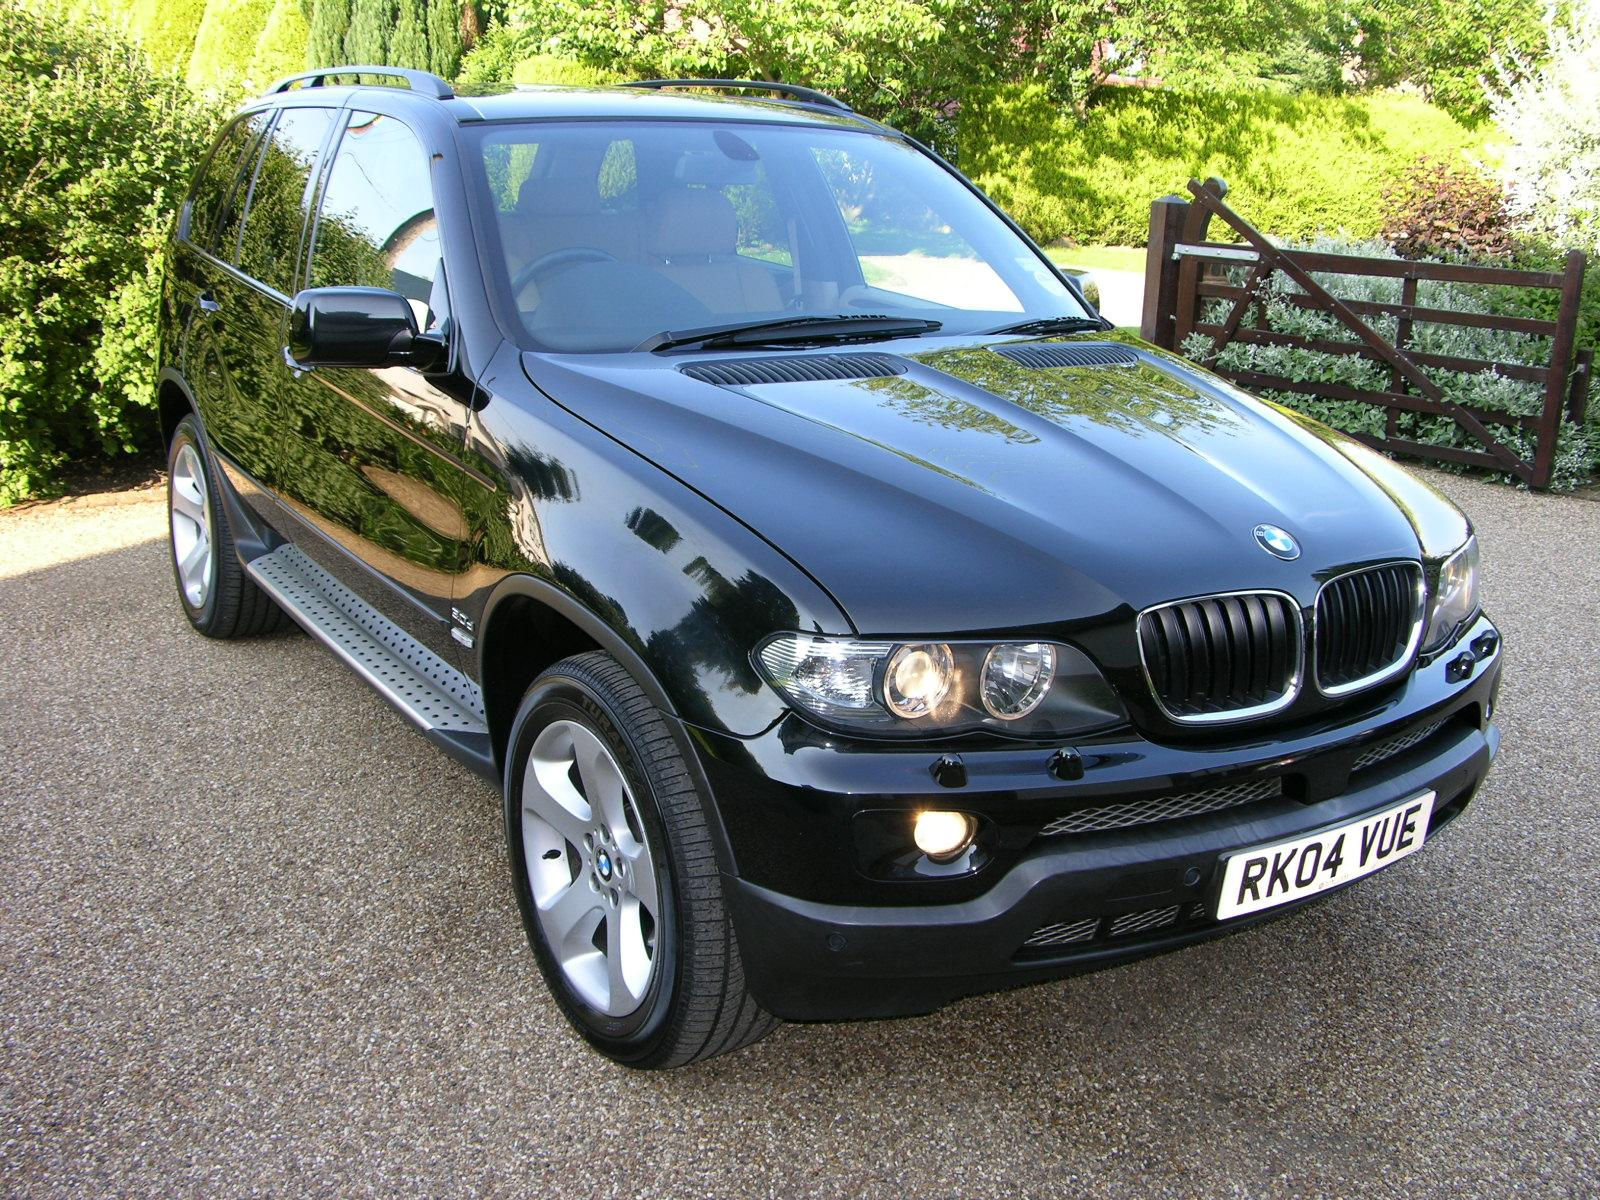 file bmw x5 sport flickr the car spy 22 jpg wikimedia commons. Black Bedroom Furniture Sets. Home Design Ideas